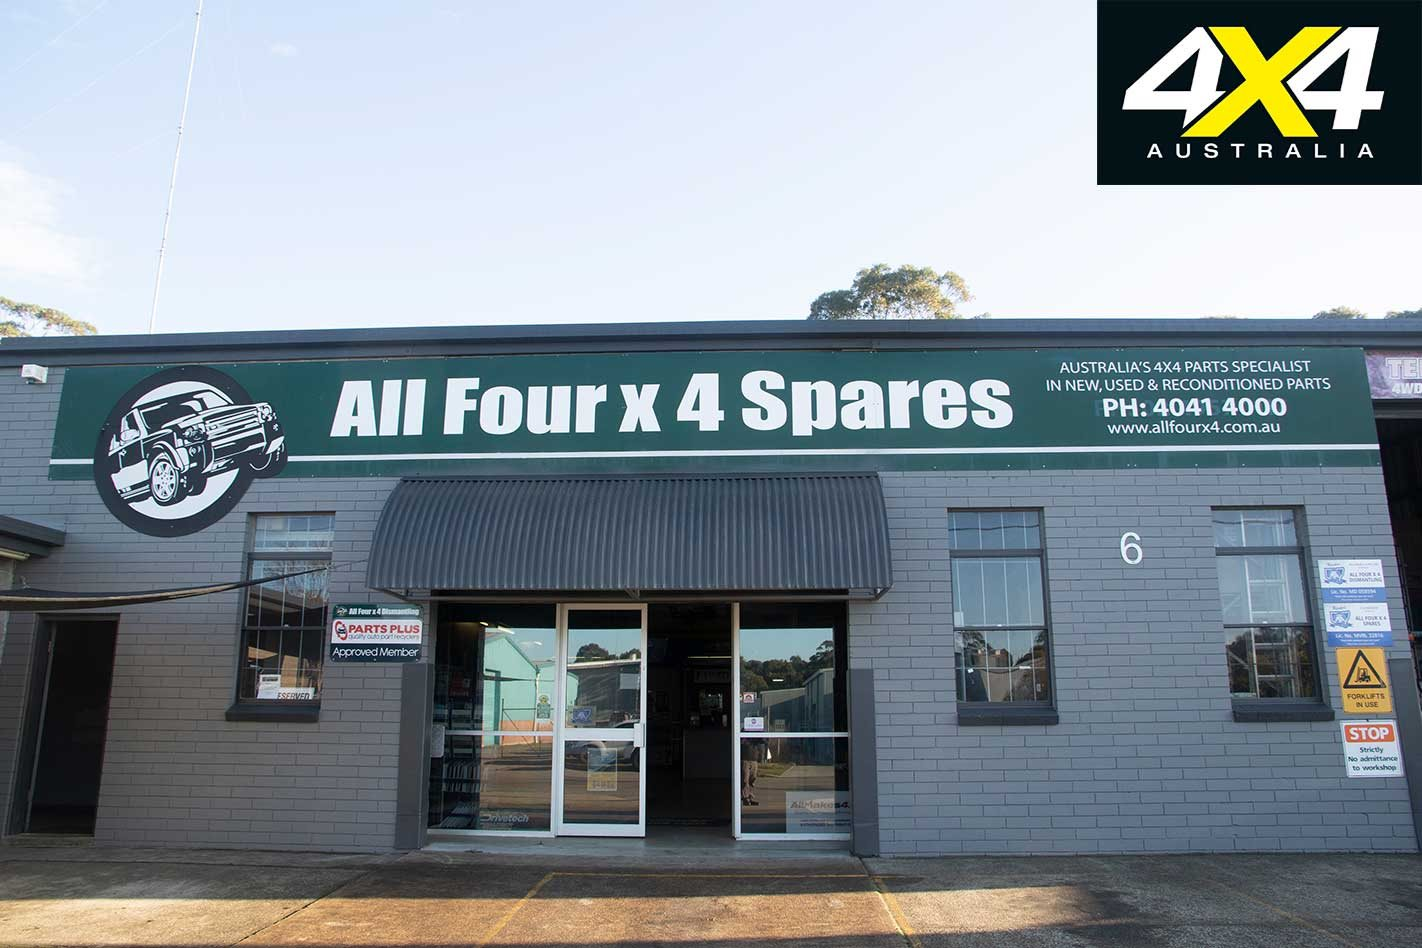 4x4 Shed 2003 Land Rover Discovery Td5 Part 4 Triple Battery Wiring Suggestions Australian Owners Al Had No Hesitation In Recommending The Nsw Piranha Off Road Distributor All Four X Spares For Fitment Of System So I Left Sydneys Northern